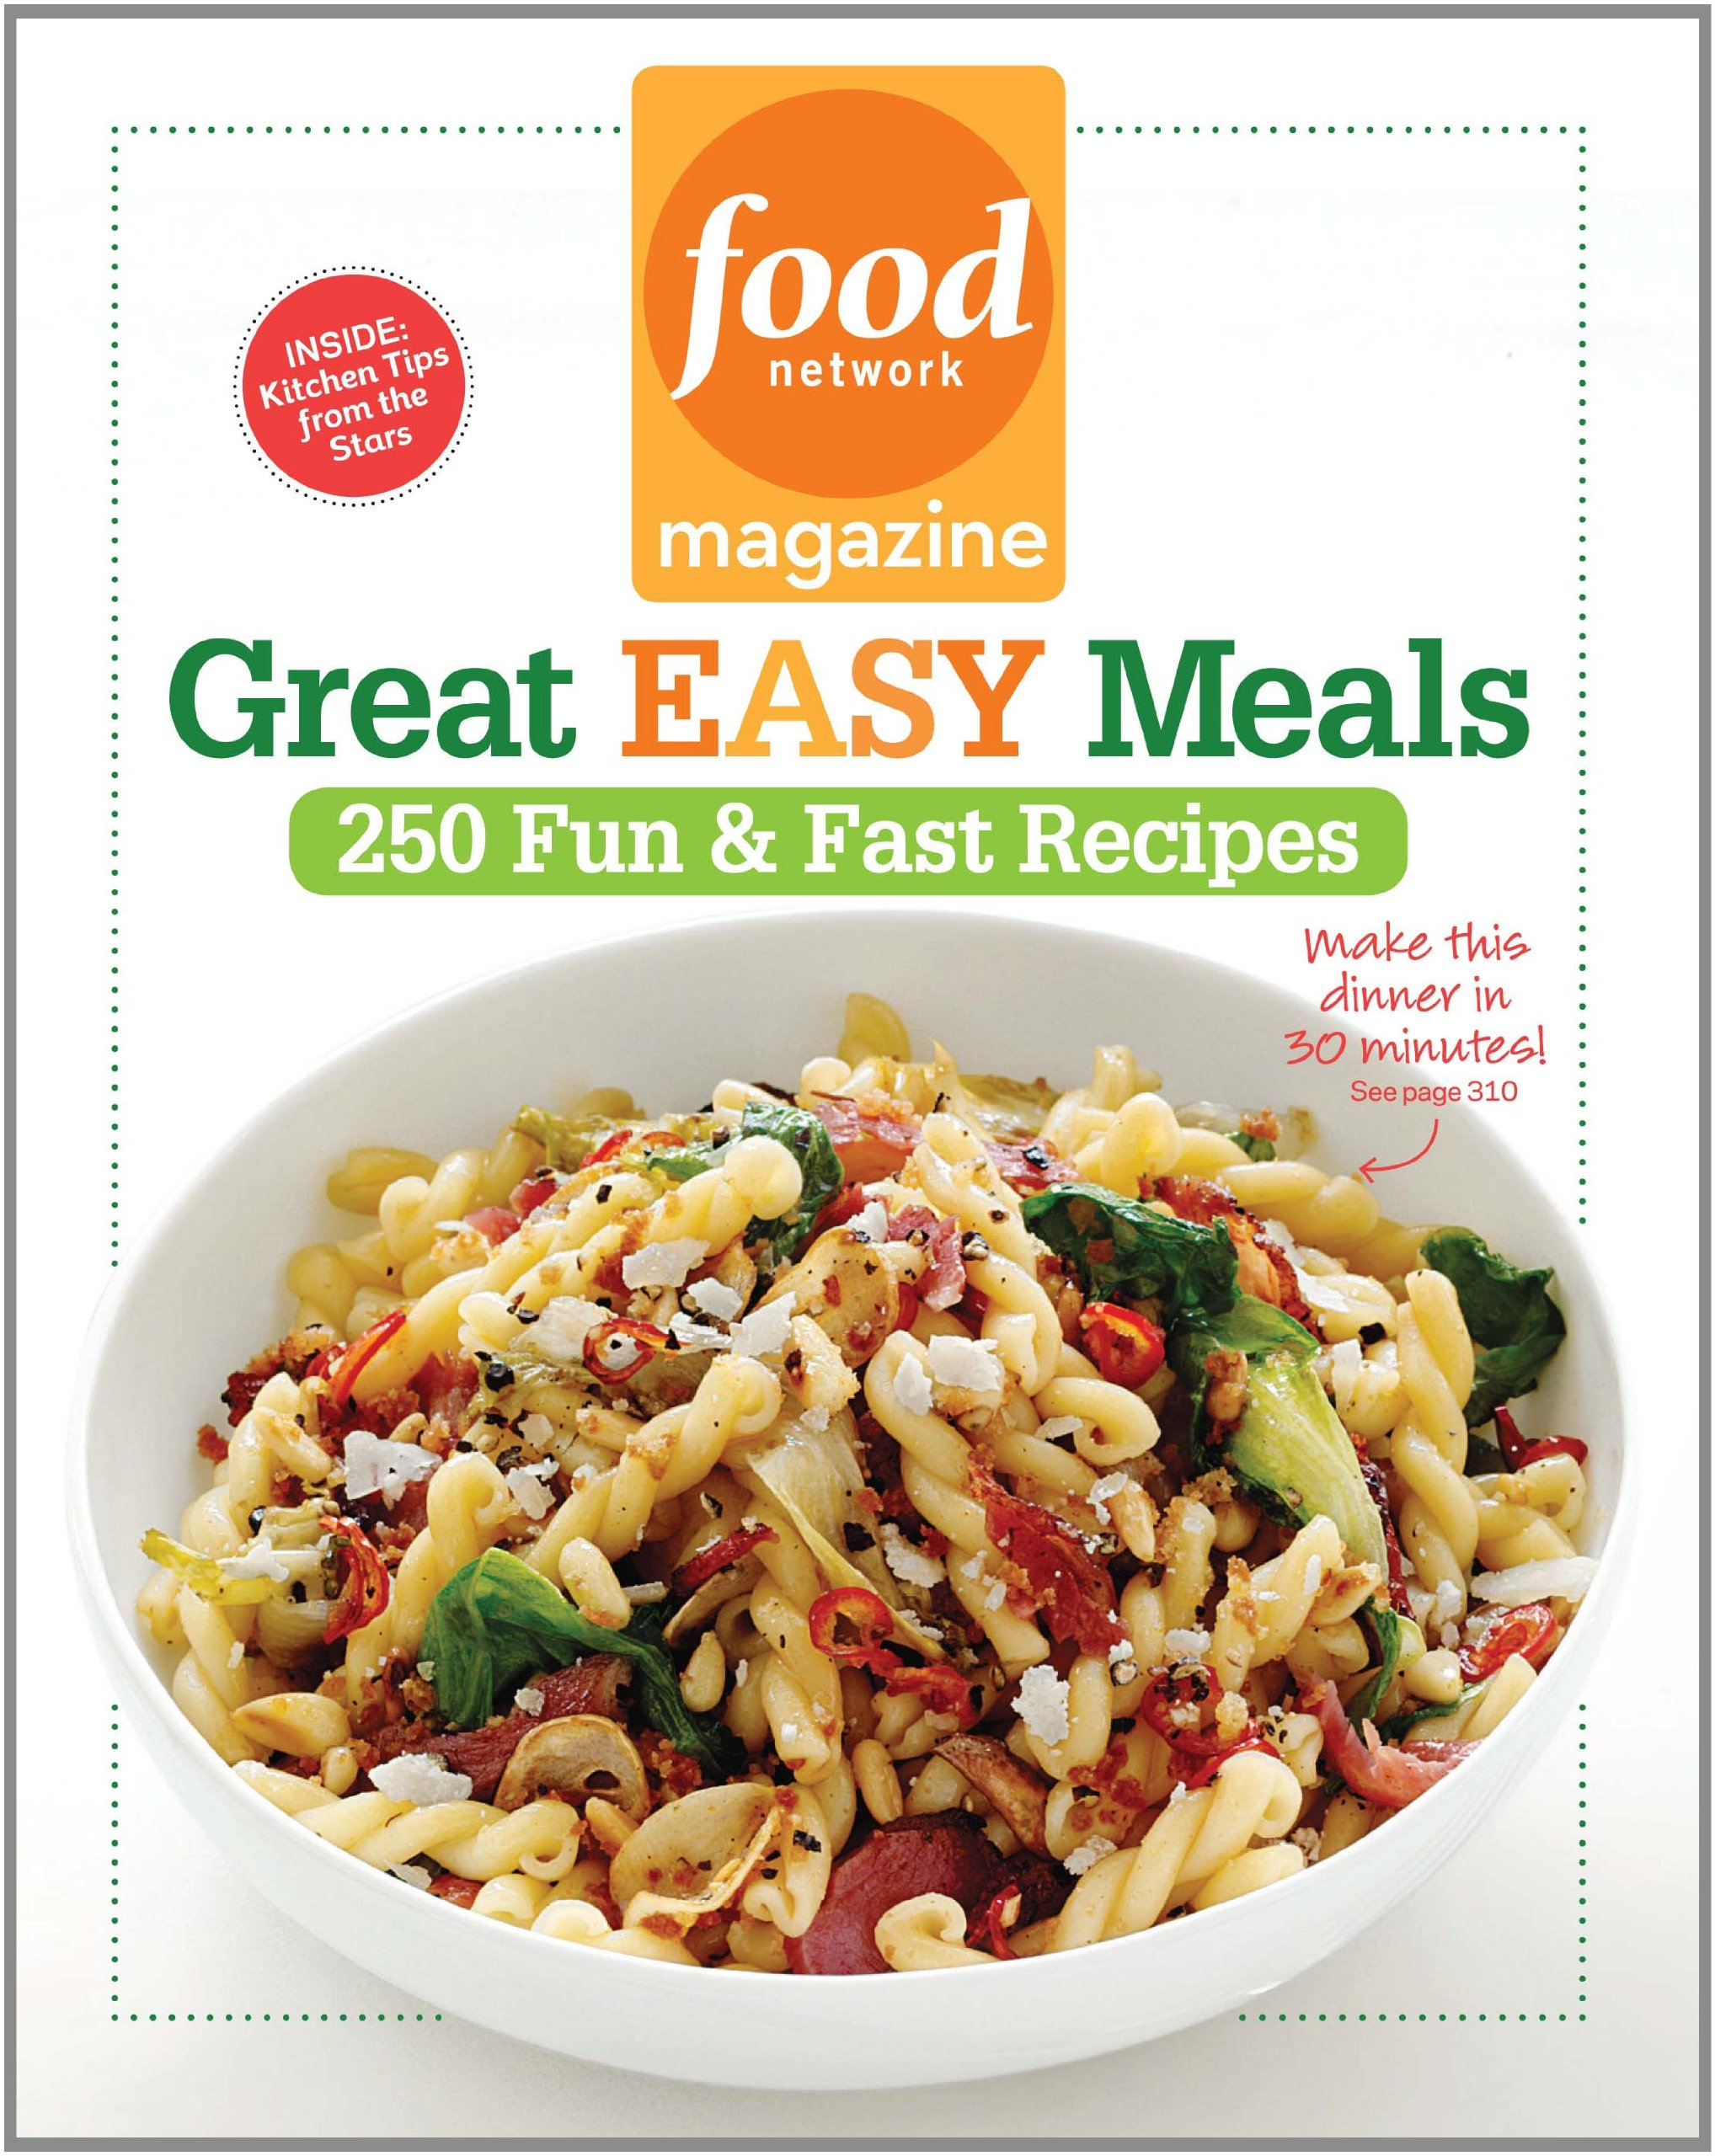 Food network magazine great easy meals 250 fun fast recipes food food network magazine great easy meals 250 fun fast recipes food network magazine 9781401324193 amazon books forumfinder